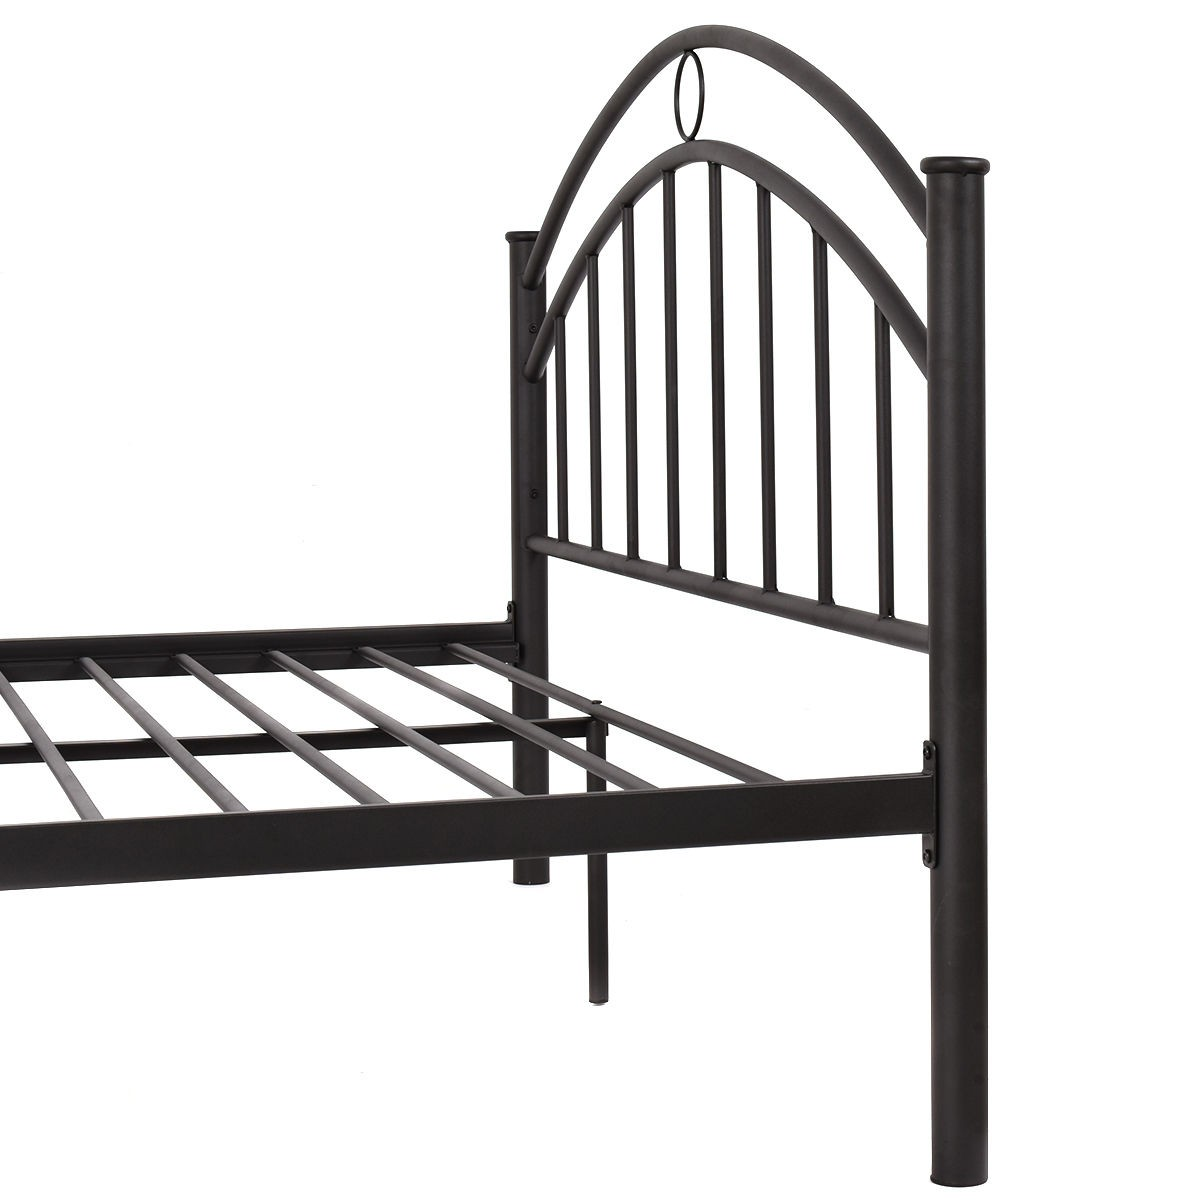 us queen size metal bed frame mattress platform headboard bedroom high quality. Black Bedroom Furniture Sets. Home Design Ideas